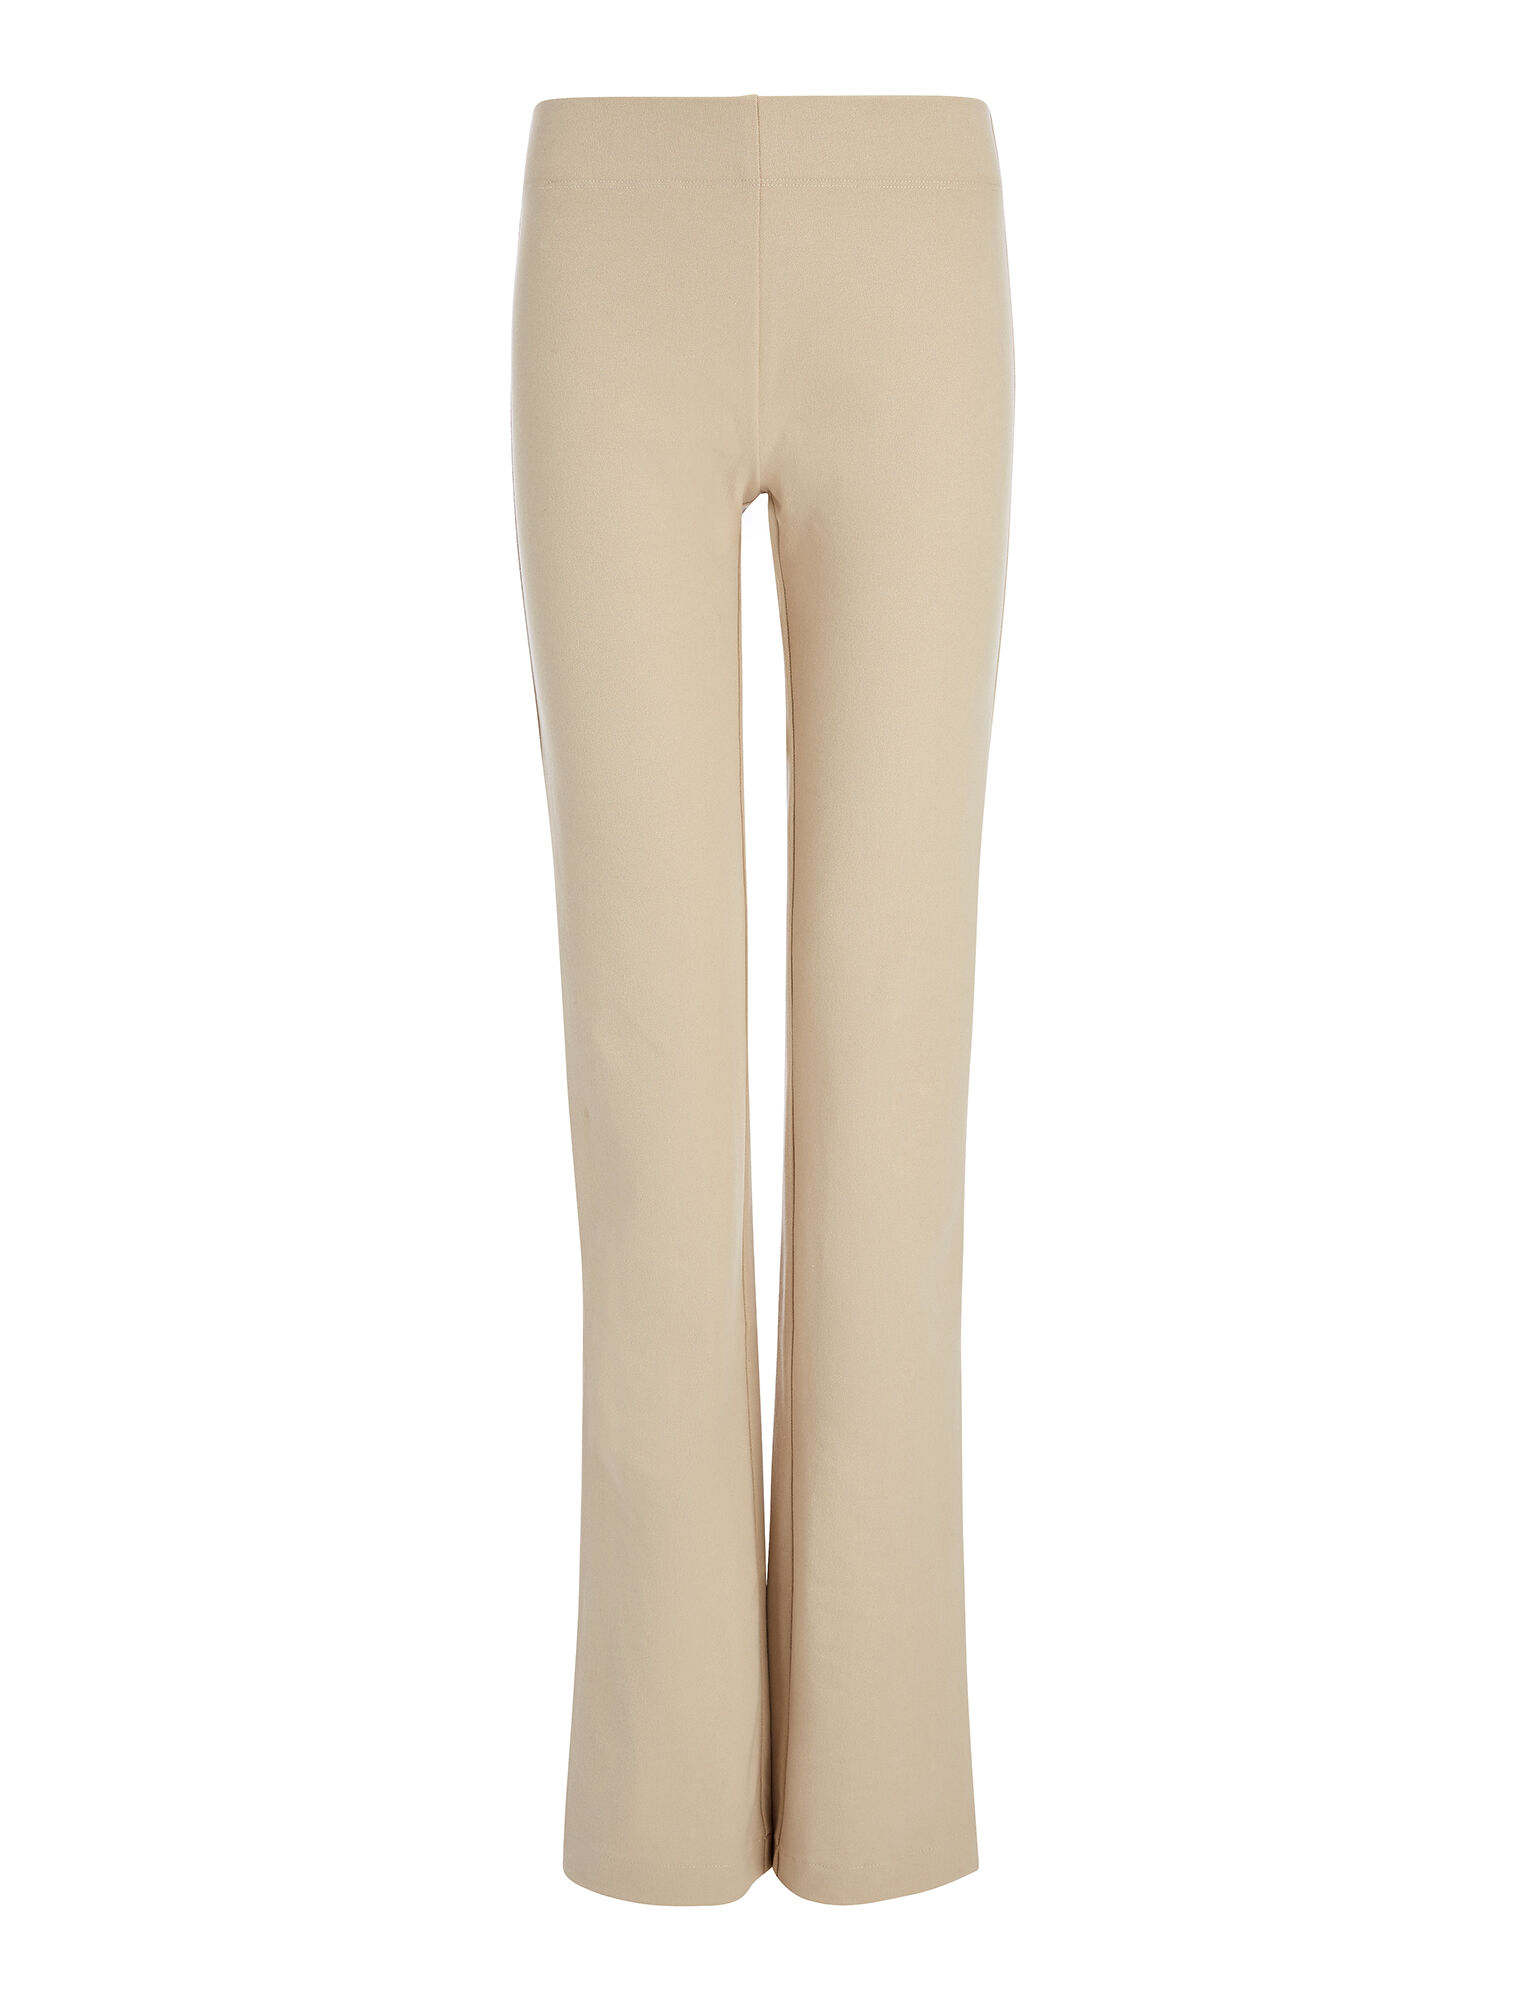 Joseph, Gabardine Stretch Lex Trouser, in BEIGE